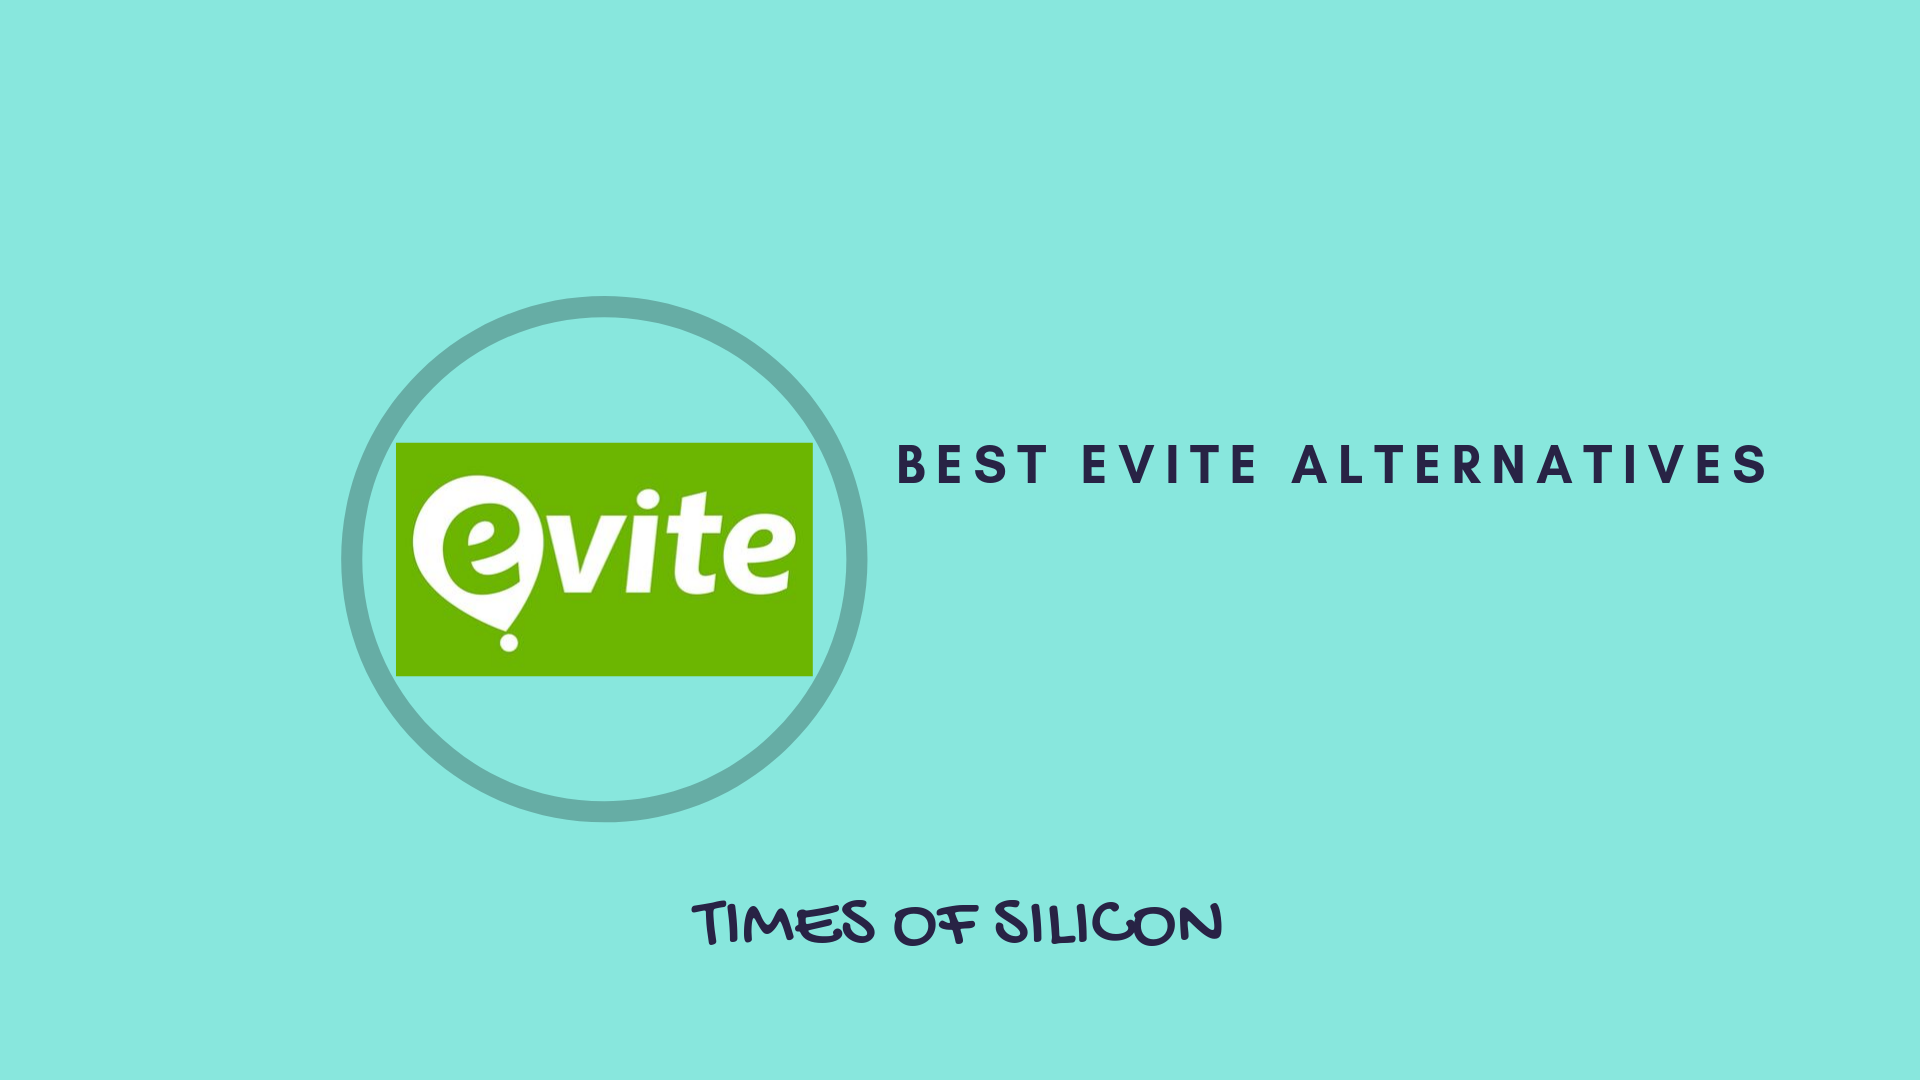 Sites Like Evite (Invitation Only) | Best Evite Alternatives